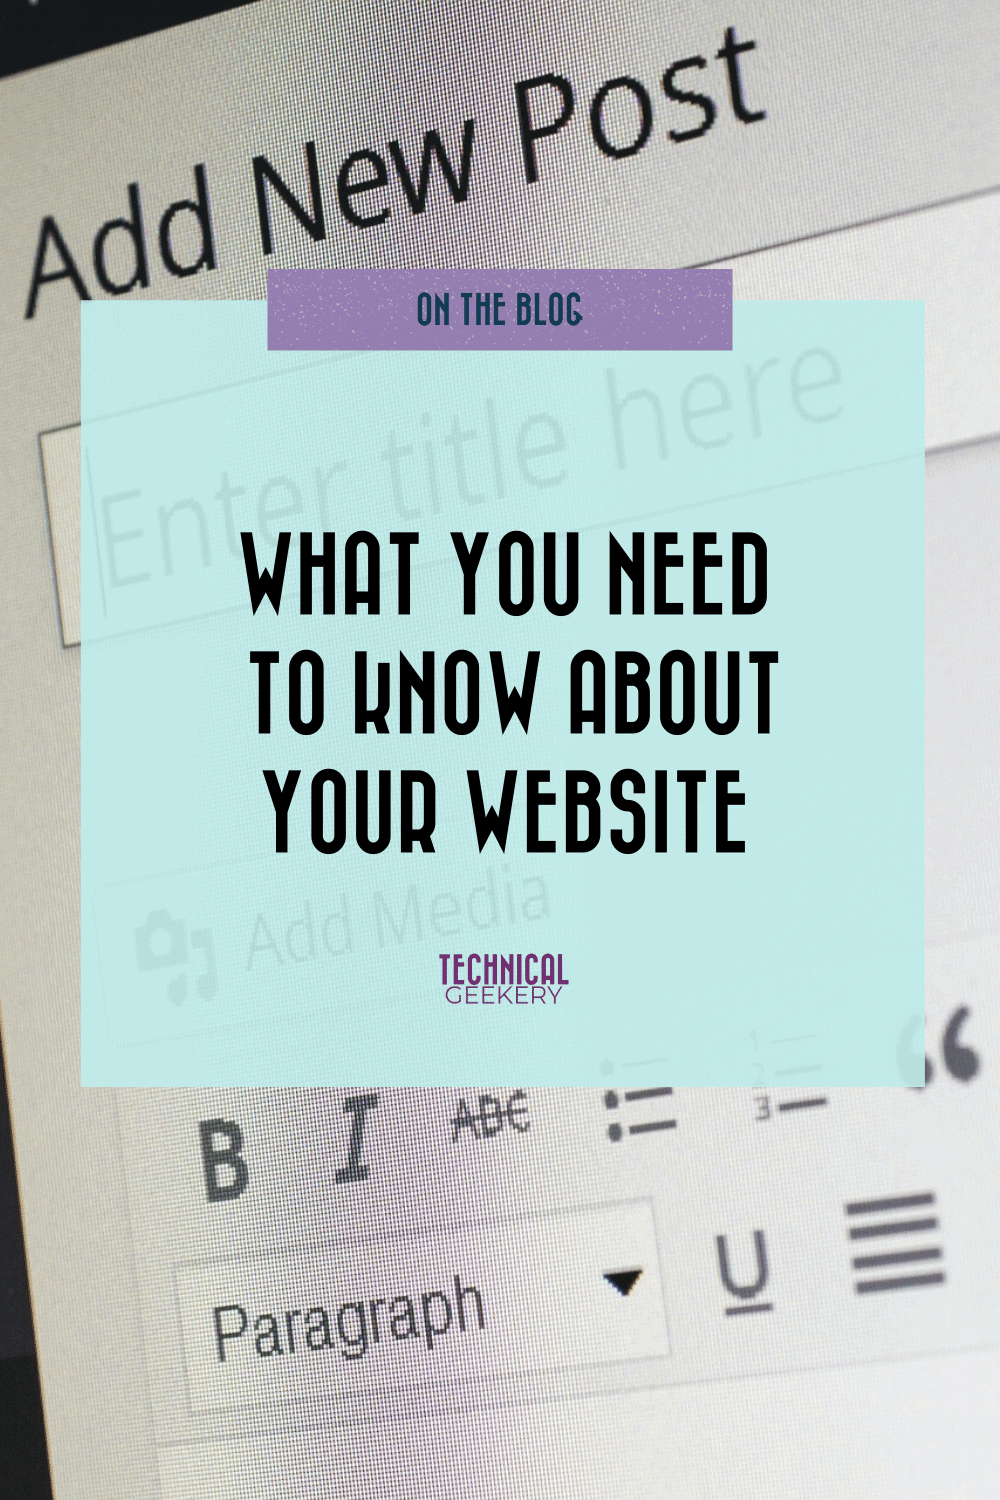 What You Need to Know About Your Website